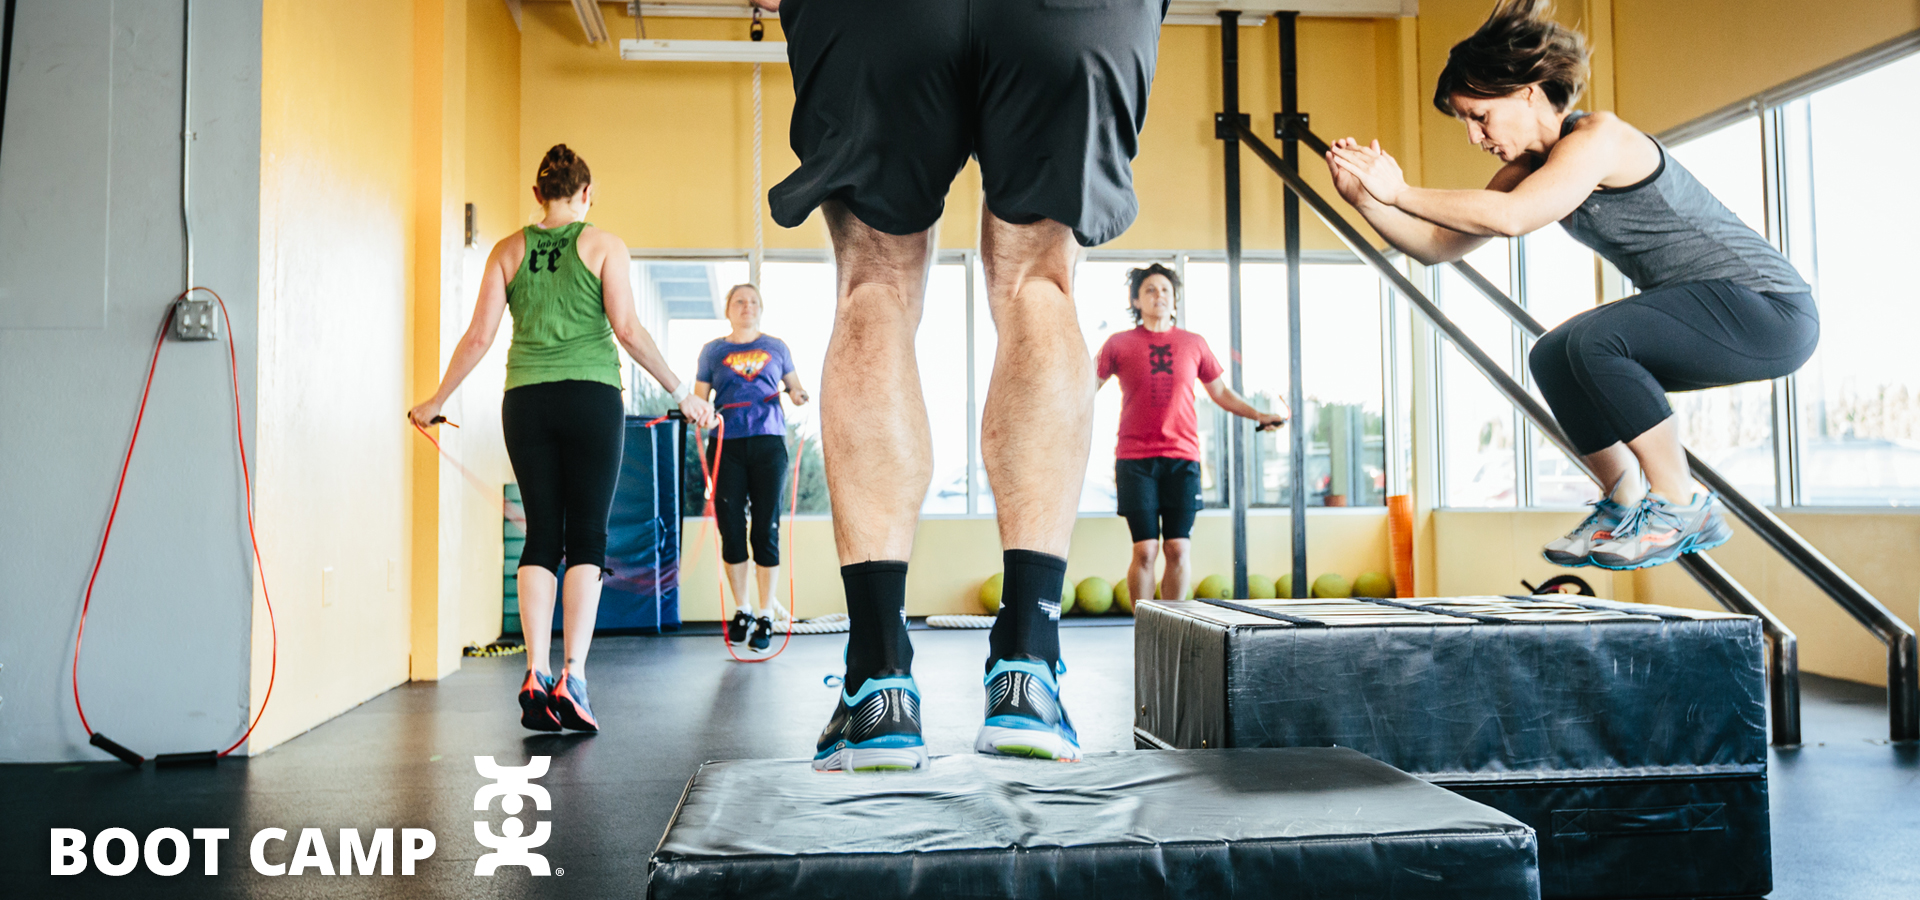 Boot Camp - Monkey Bar Gym Missoula